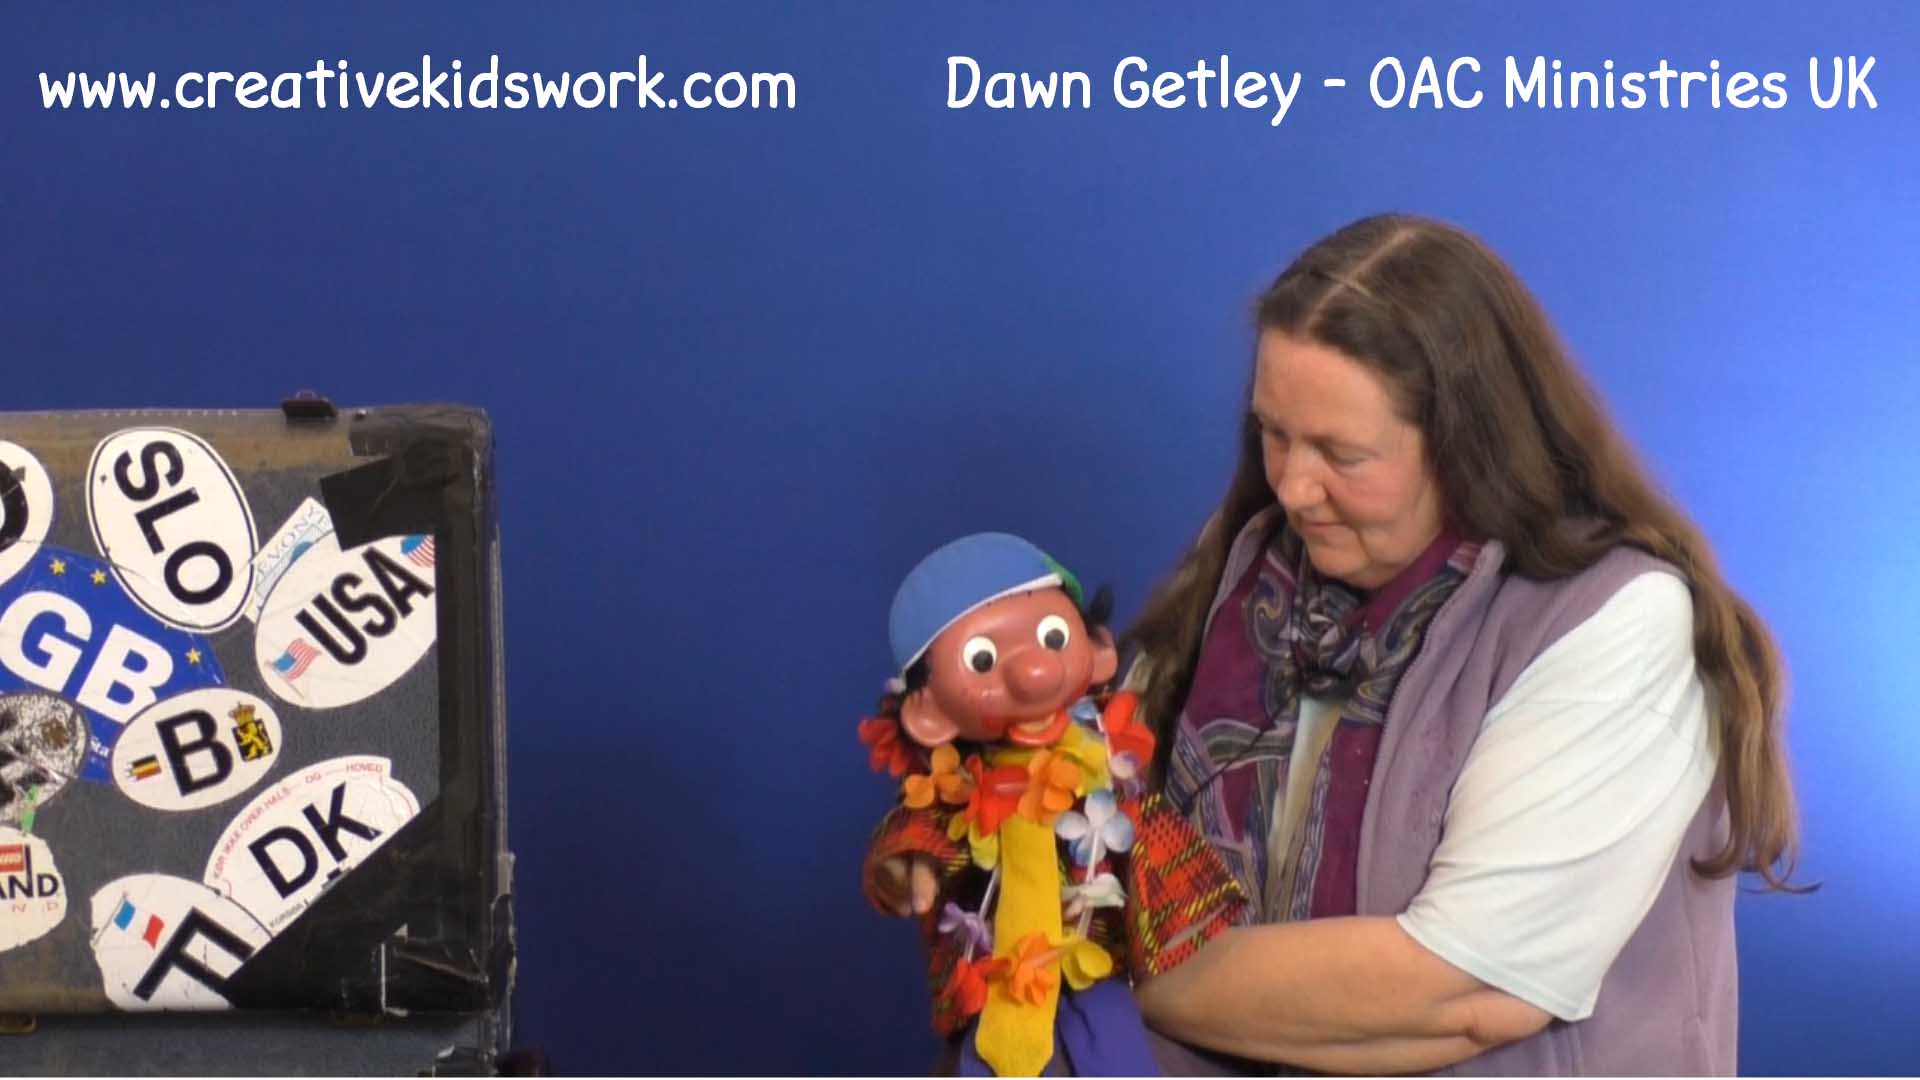 Dawn Getley does a ventriloquist act with her puppet Horace